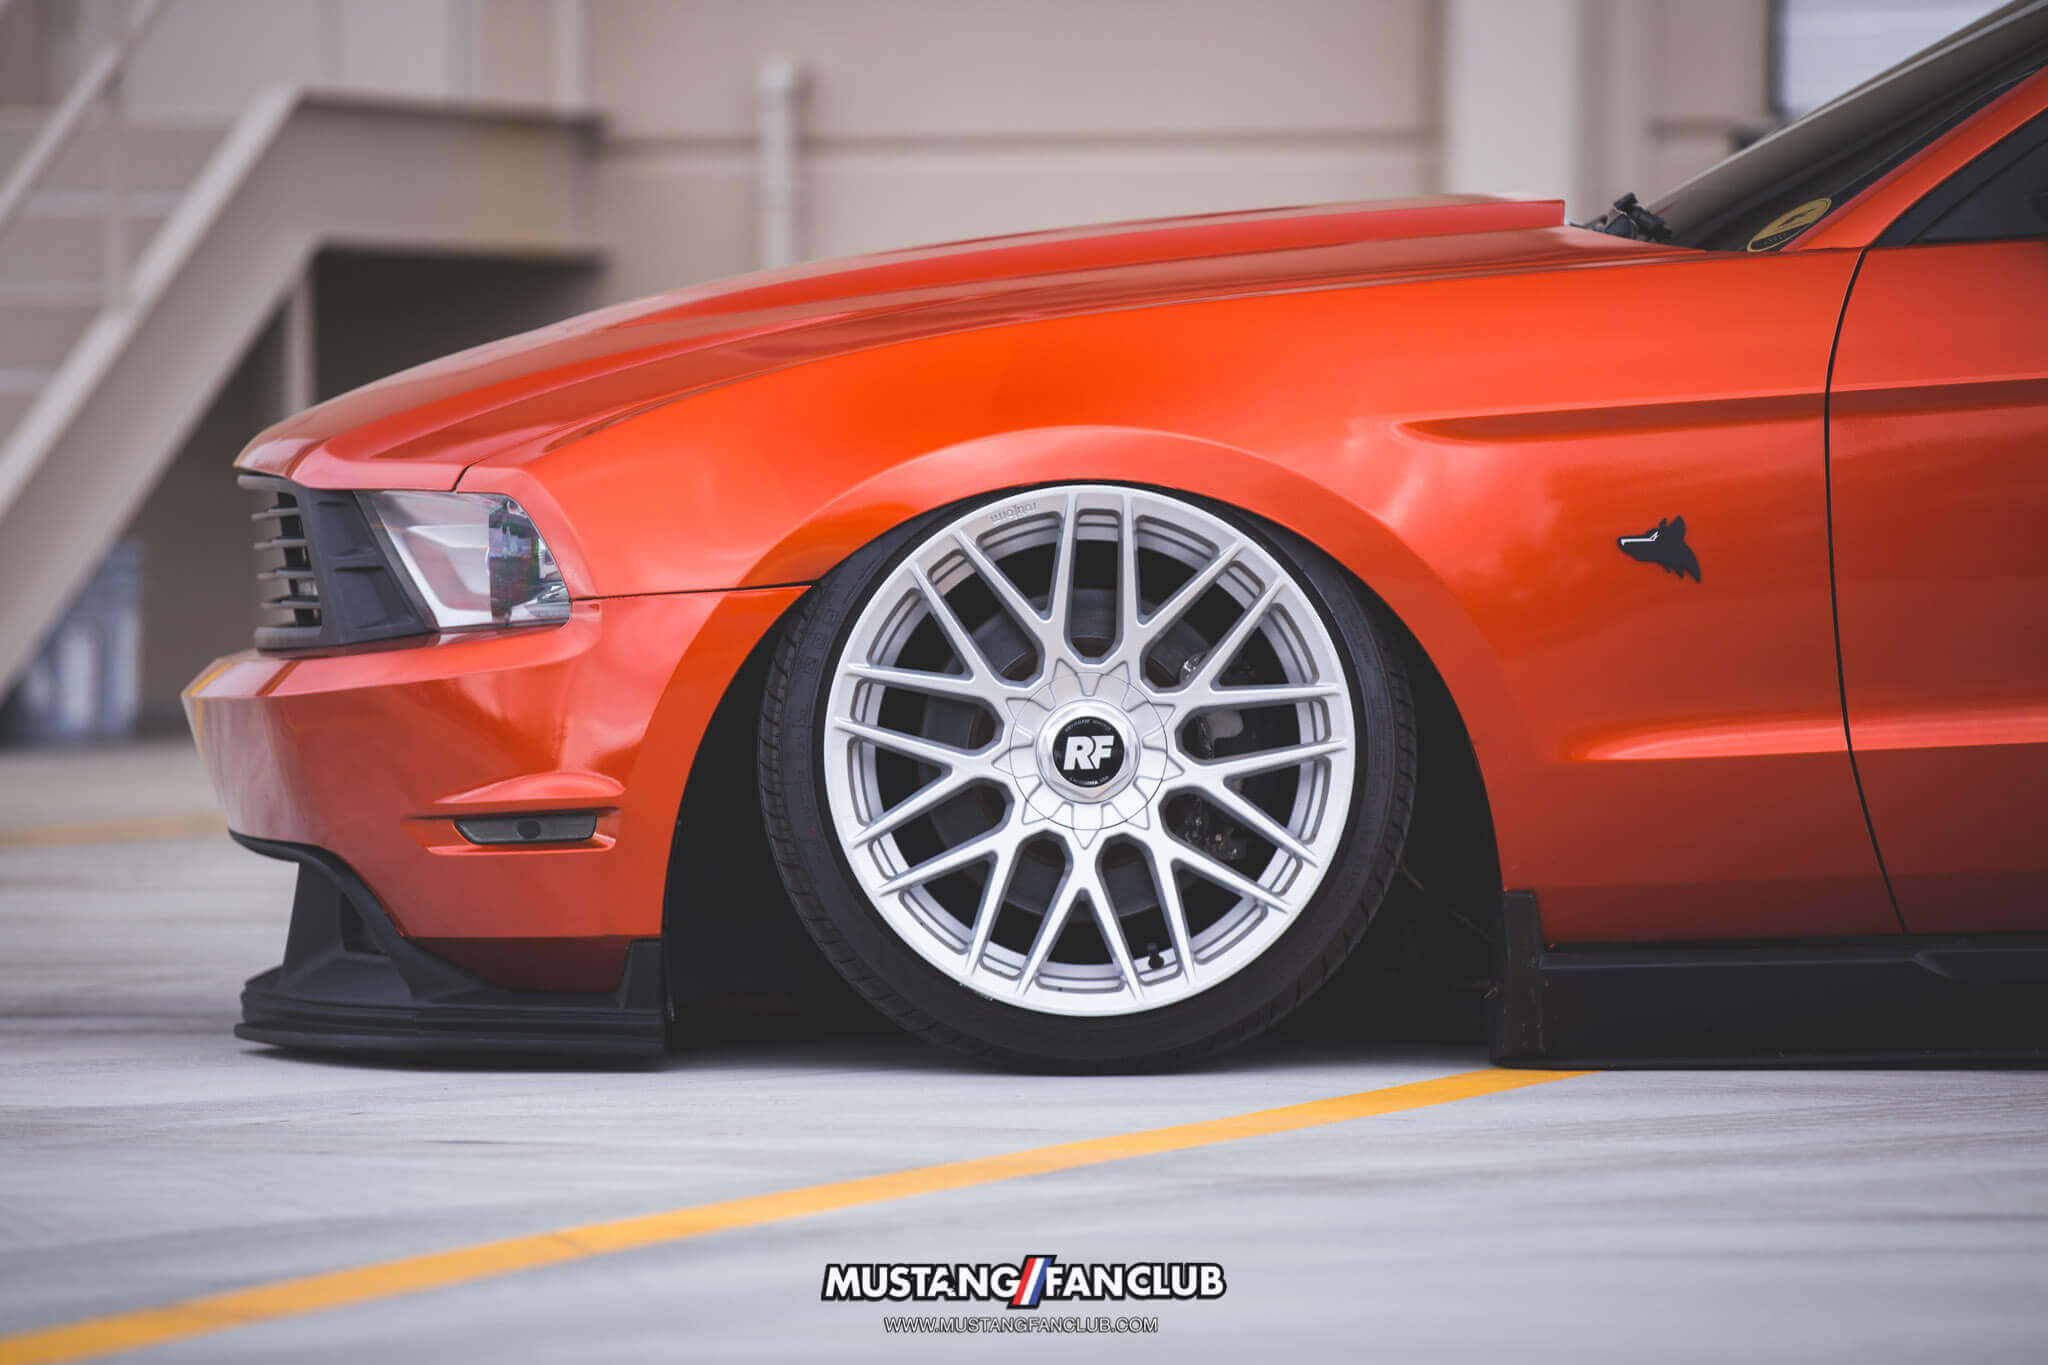 mustang fan club mustangfanclub @mustangfanclub 2011 11 mustang coyote 5.0L 5.0 wrapped bagged air suspension air lift performance rotiform wheels dillon shand RSE anything coyote badge upr products coyote emblem S197 3m 1080 fiery orange